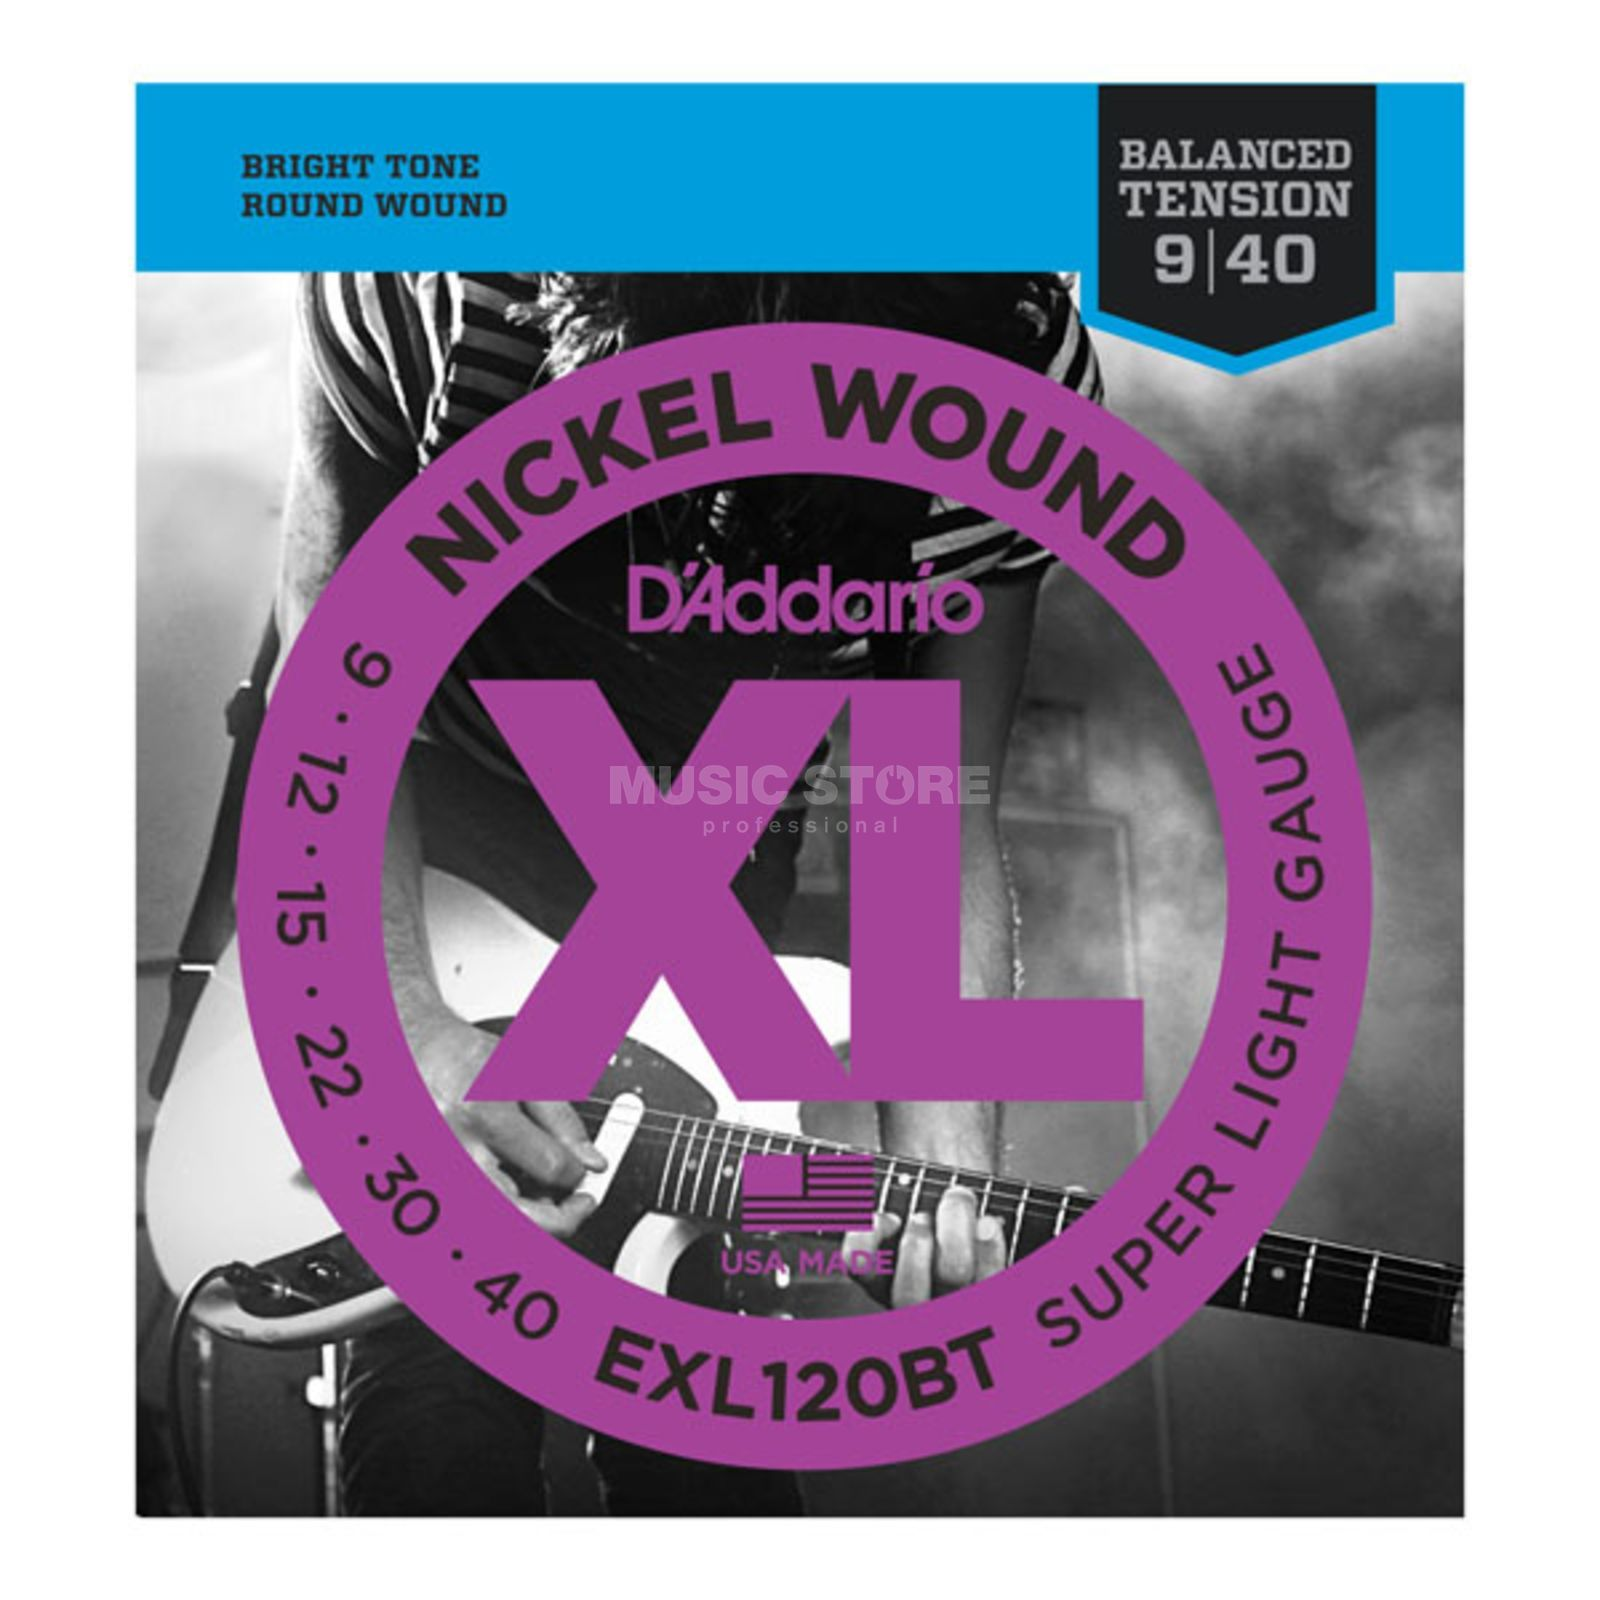 D'Addario EXL120BT 09-40 Balanced Tension Nickel Wound Produktbild